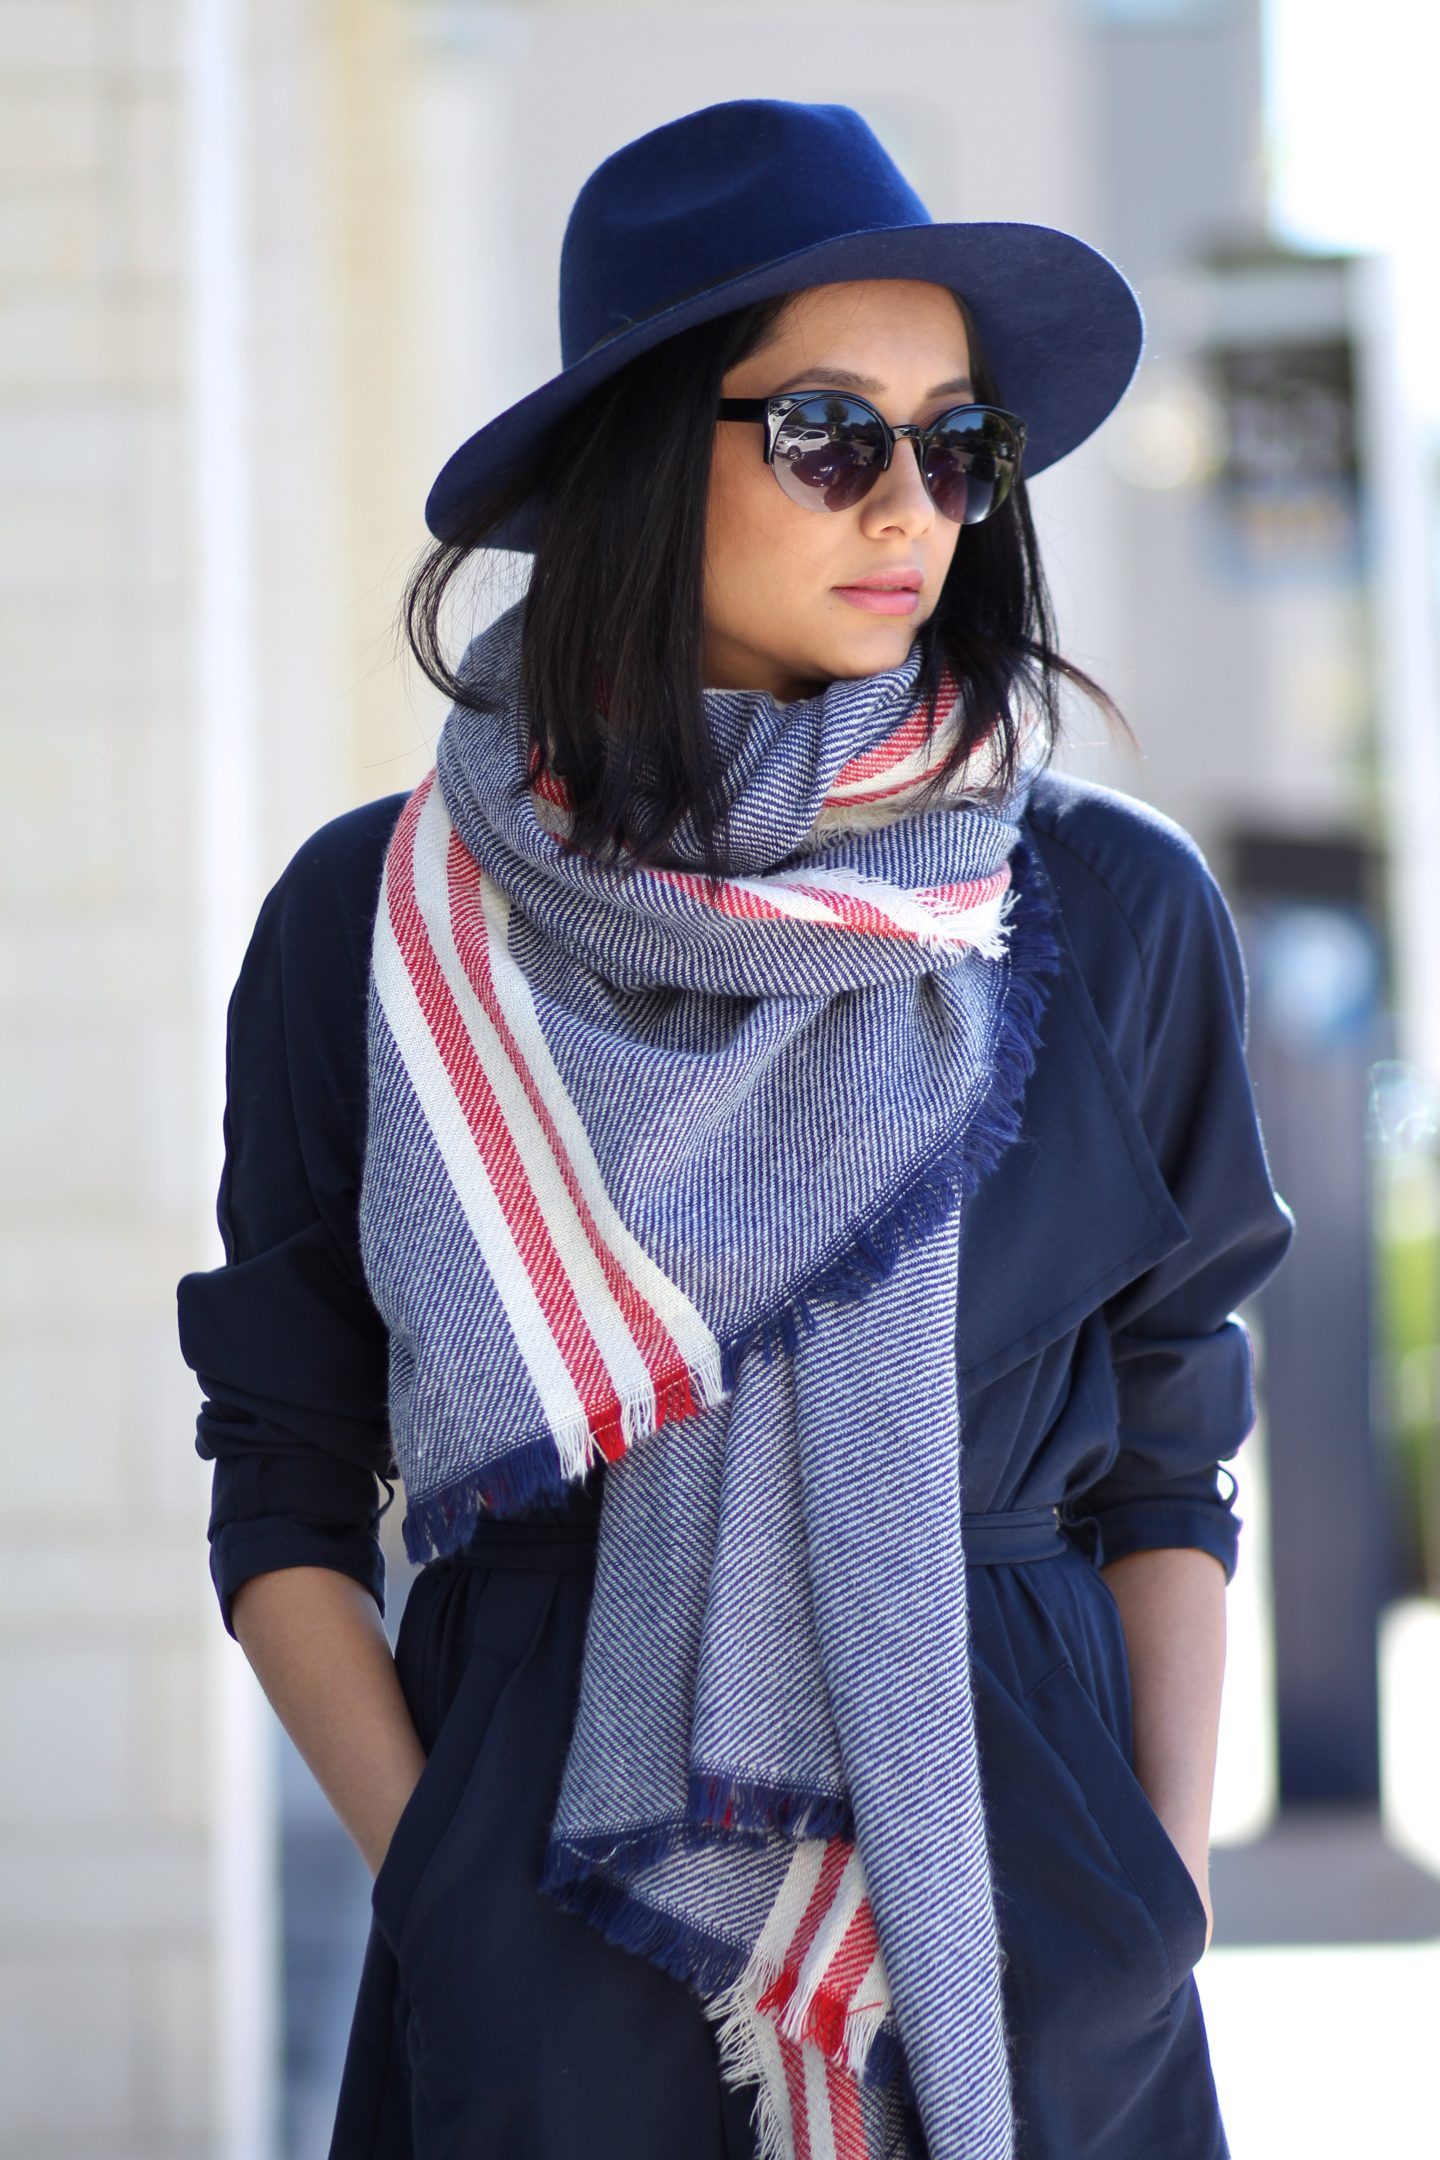 Navy trench coat, fedora & blanket scarf-Perfect Fall outfit